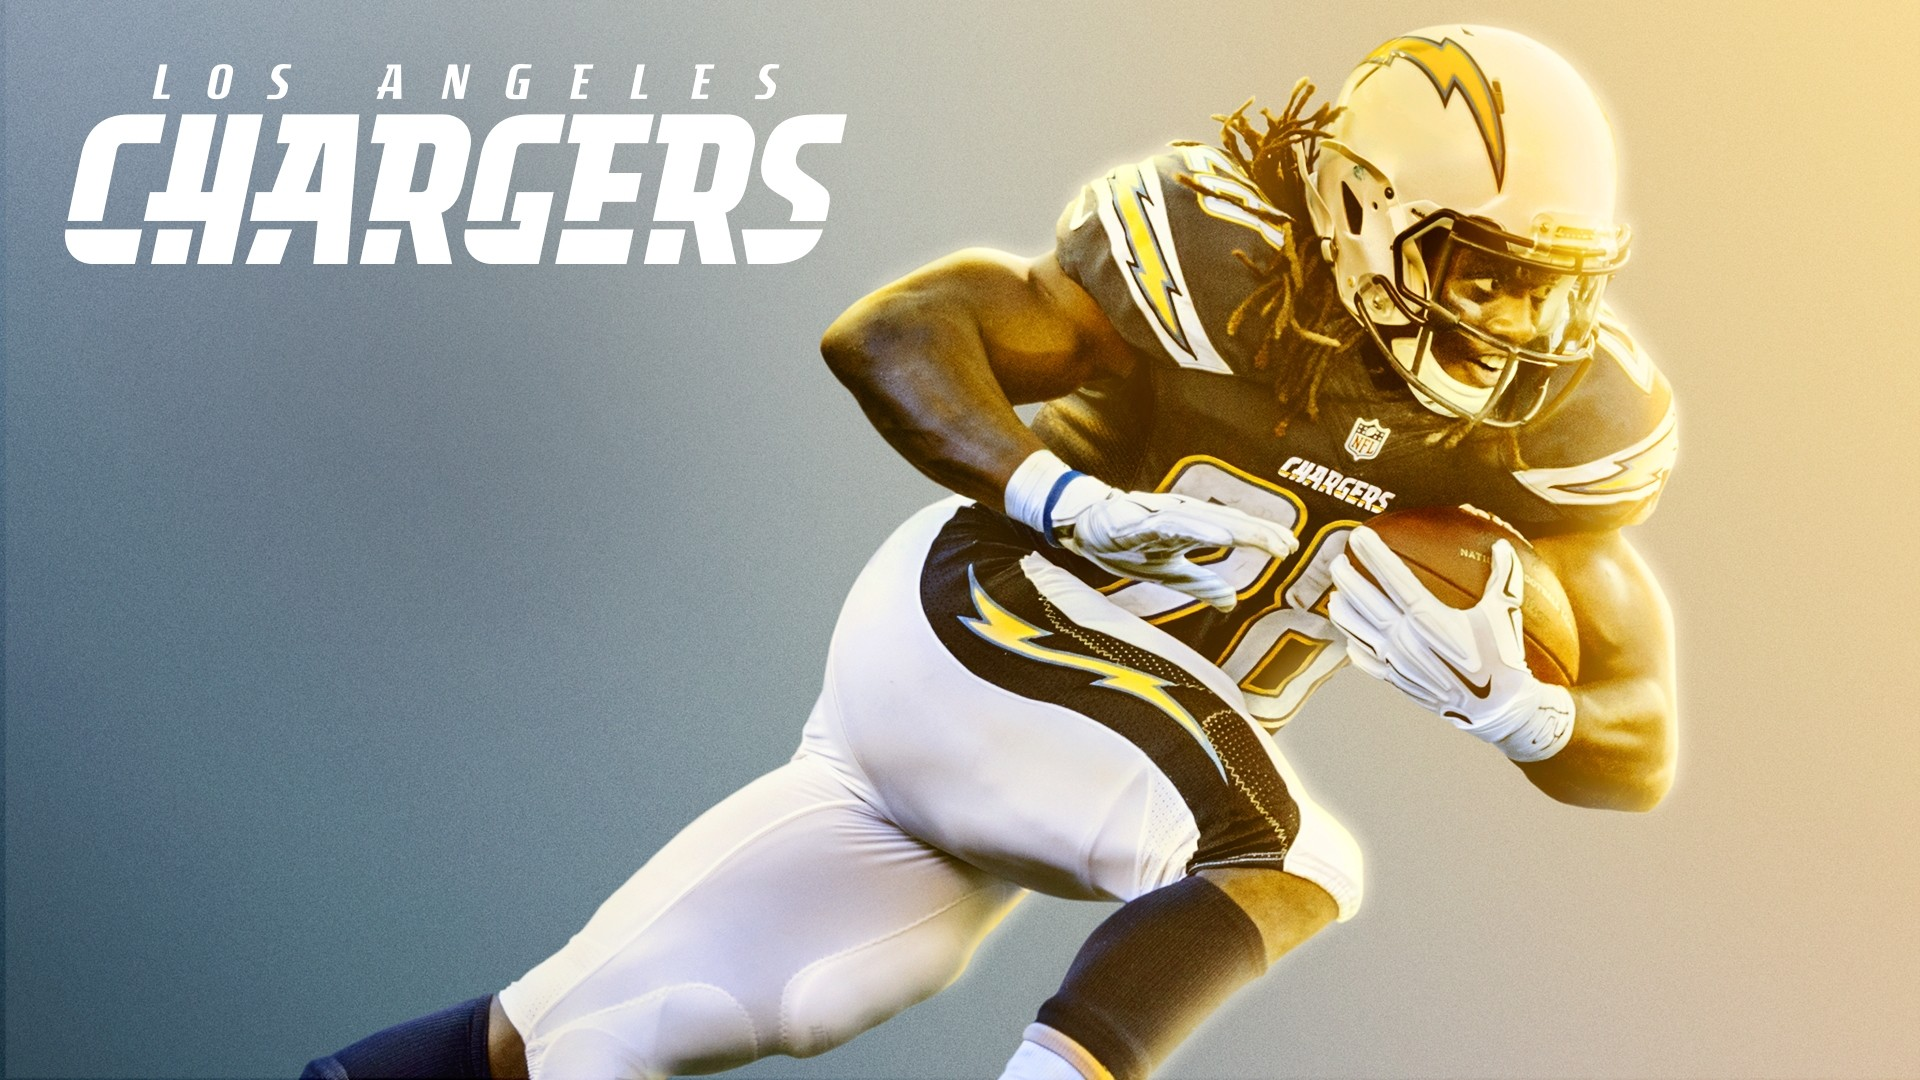 Chargers Download Wallpaper